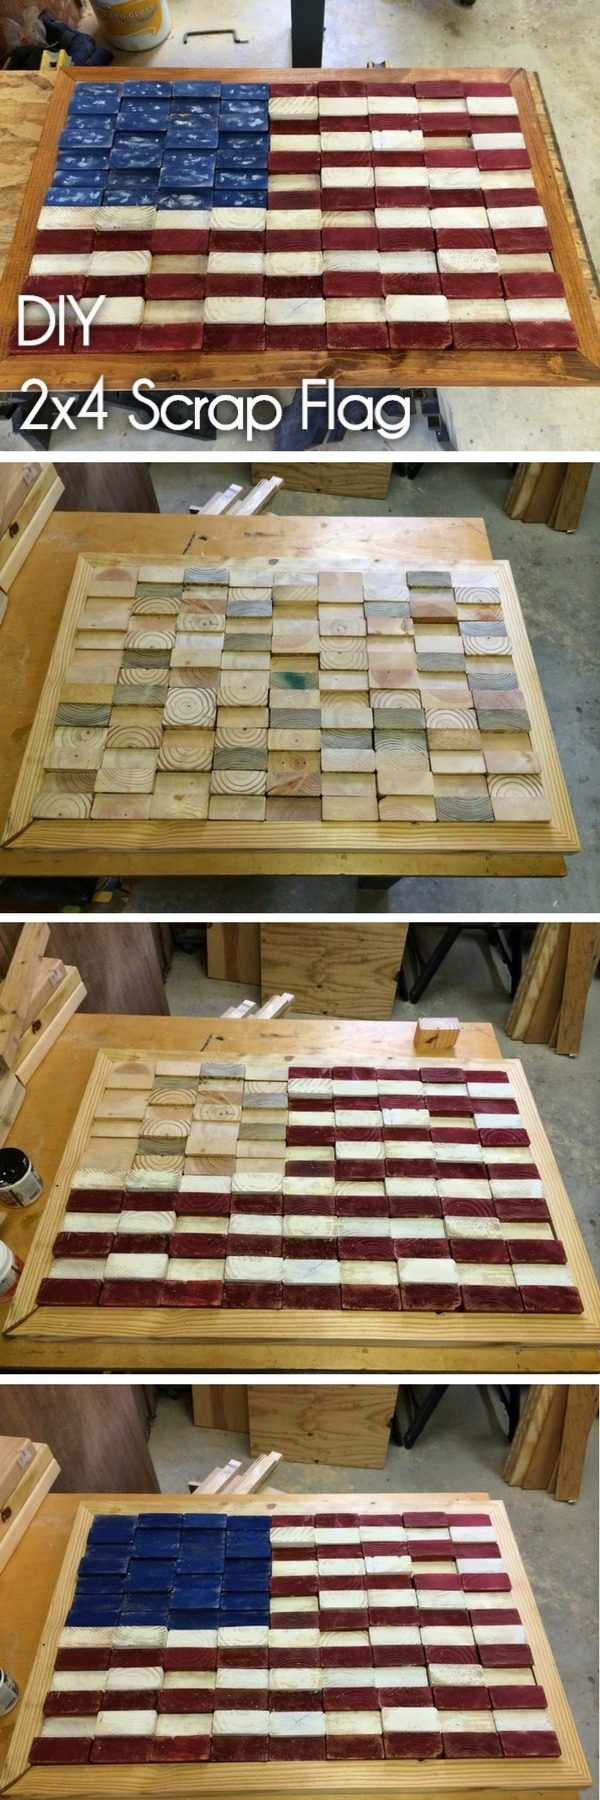 20 Crafty 2x4 DIY Projects That You Can Easily Make - Check out how to make a #DIY #wooden scrap flag from 2x4s #HomeDecorIdeas